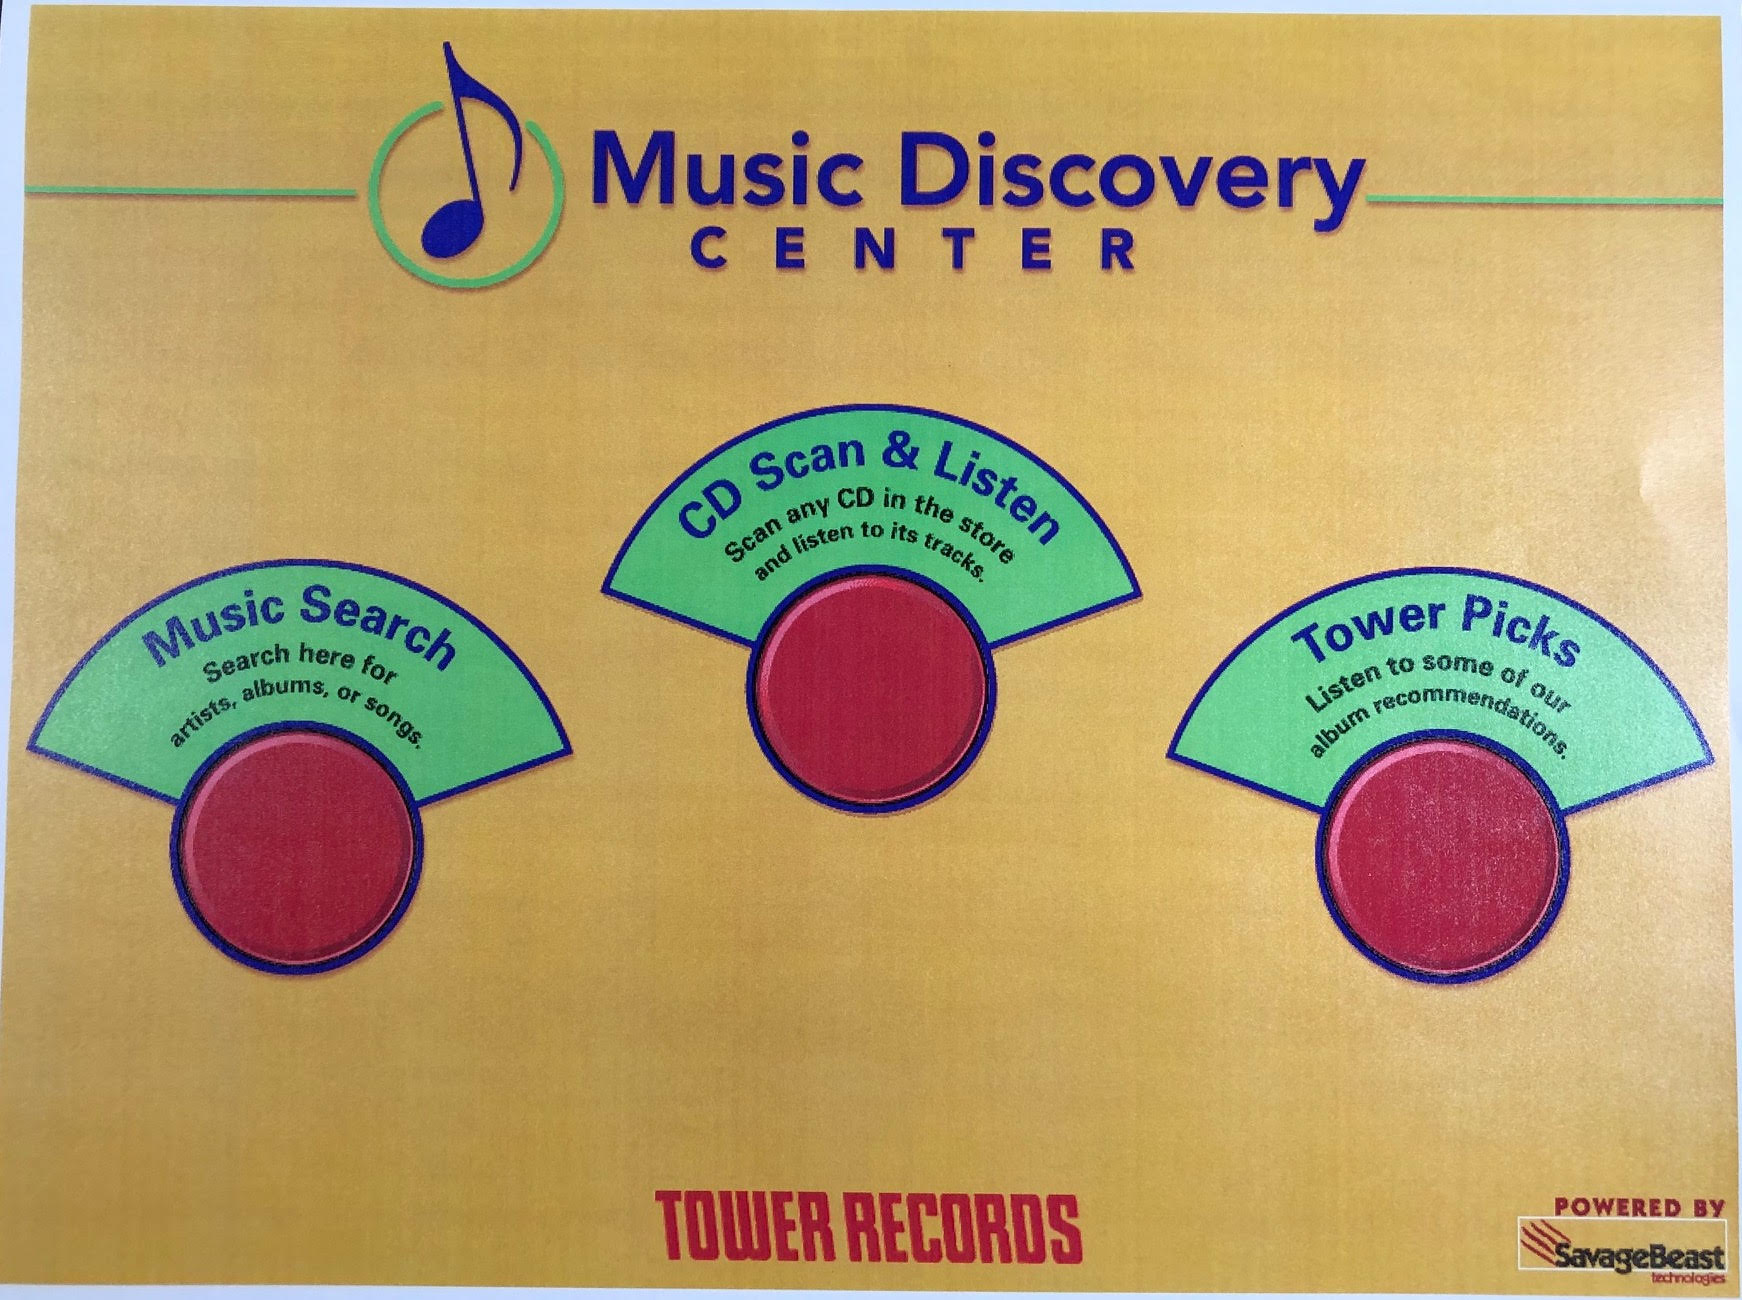 A mockup of an interface for music listening at Tower records.